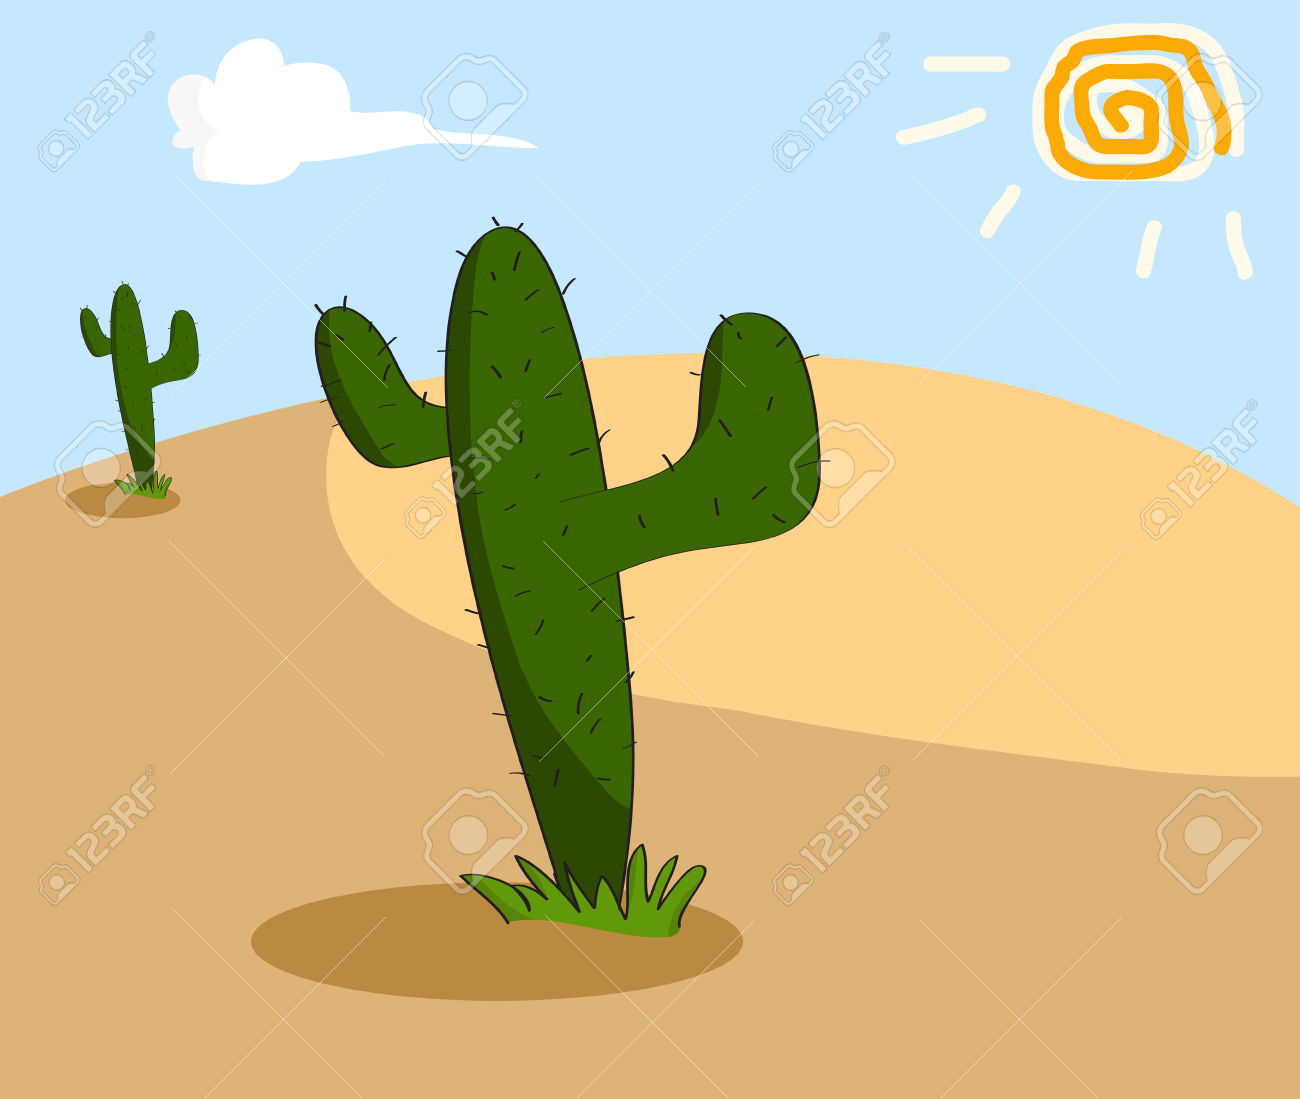 Cactus Grows In The Arid Desert Royalty Free Cliparts, Vectors.